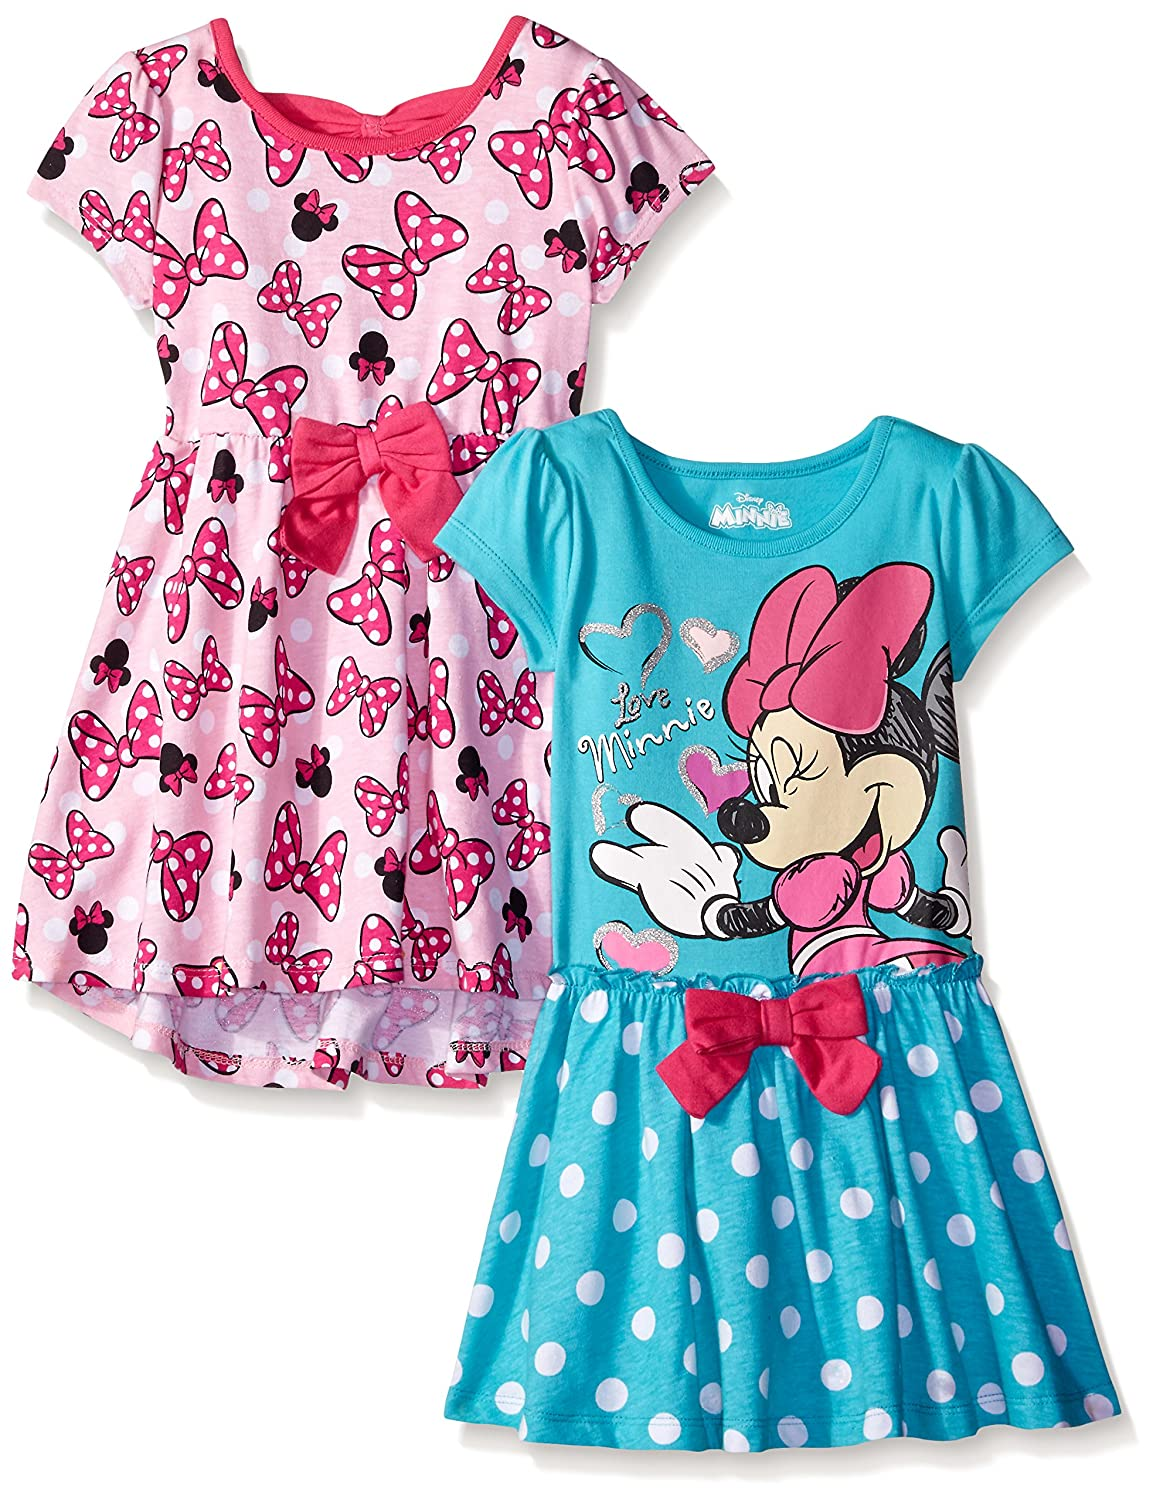 Amazon.com: Disney Girls\' 2 Pack Minnie Mouse Dresses: Clothing